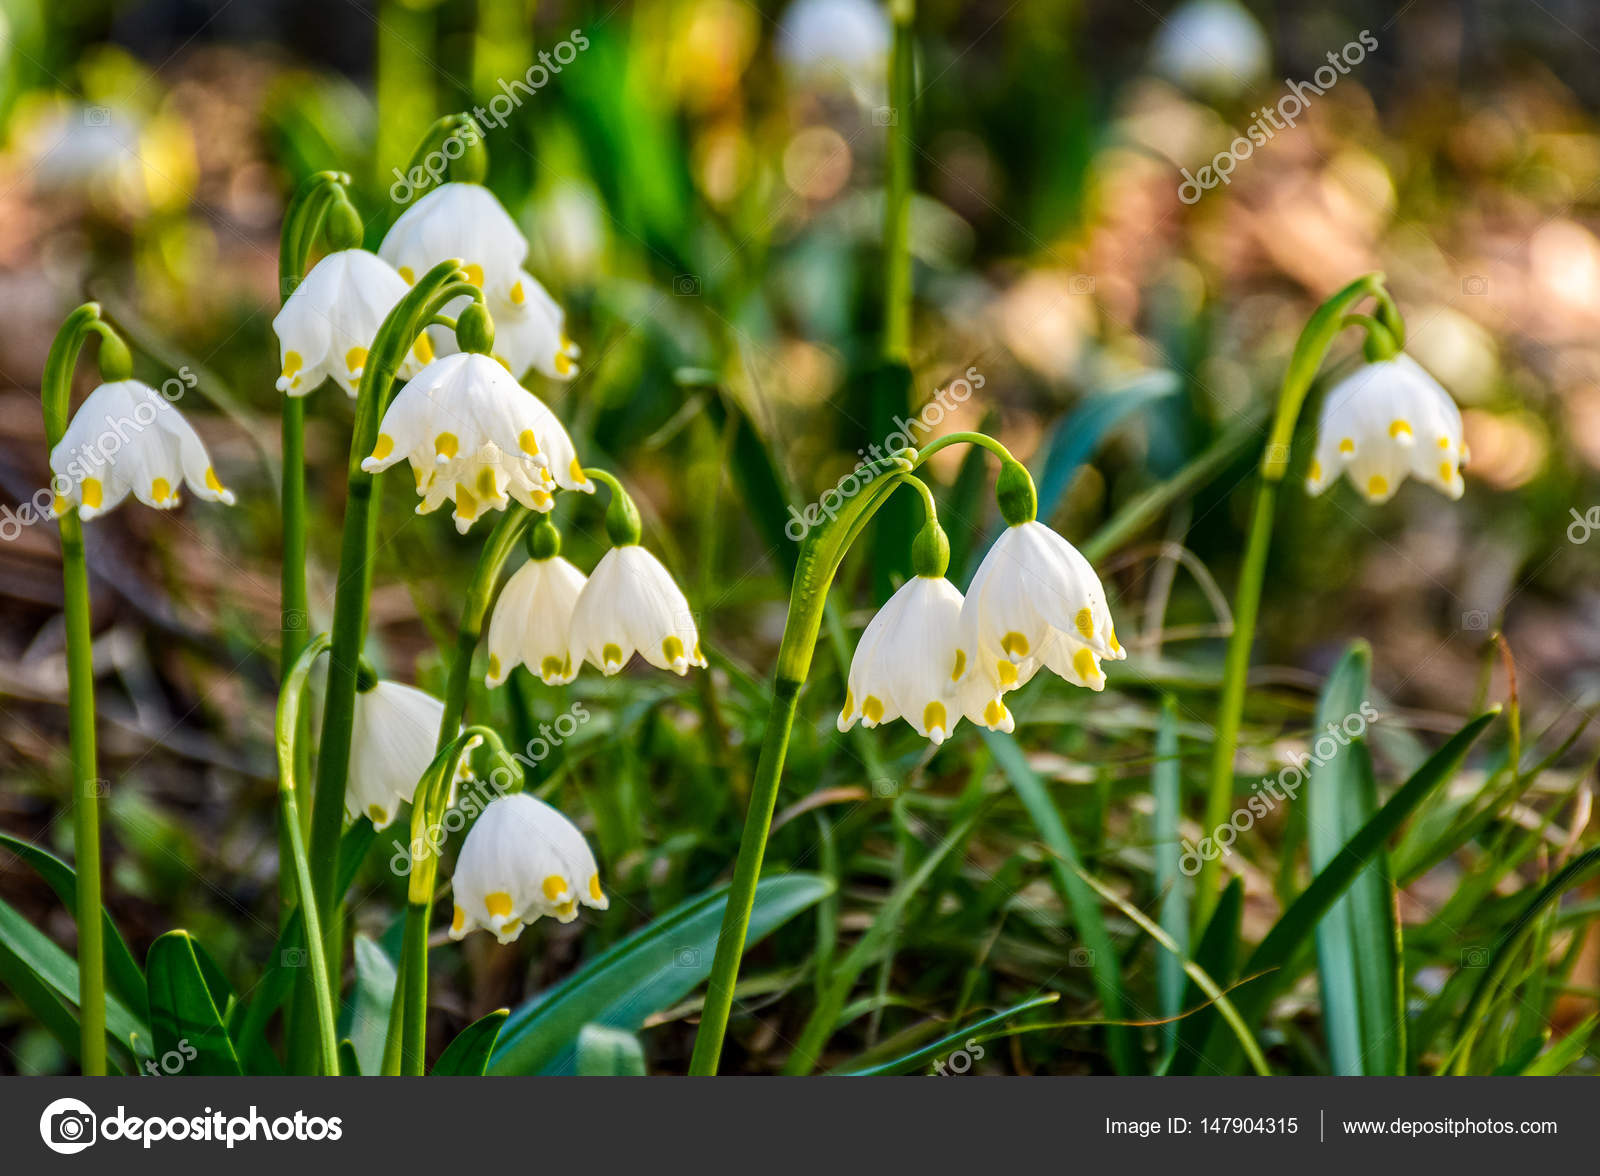 Snowflake First Flowers Of Spring Stock Photo Pellinni 147904315